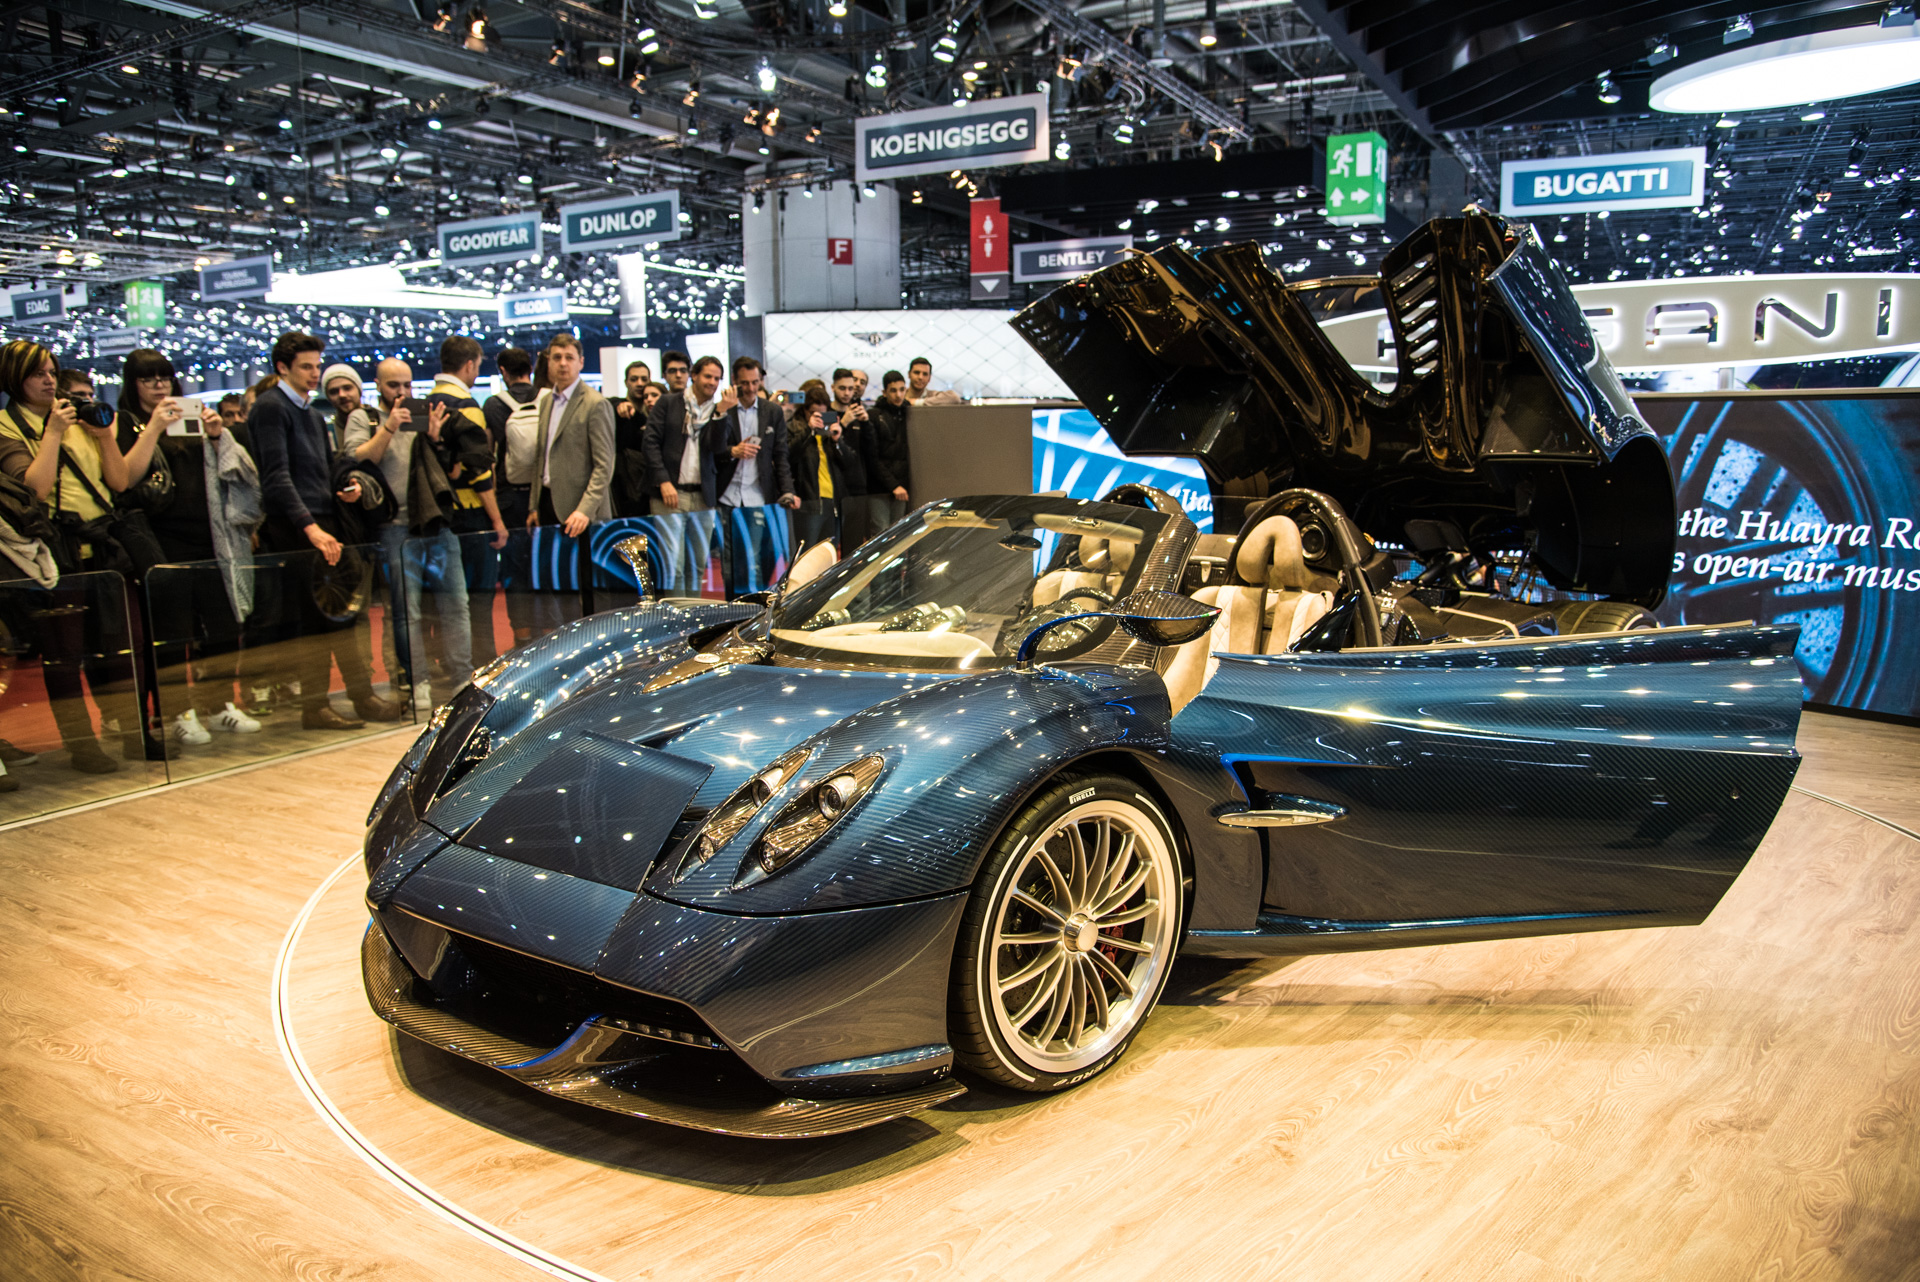 geneva-international-motor-show-igor-sinitsin-99